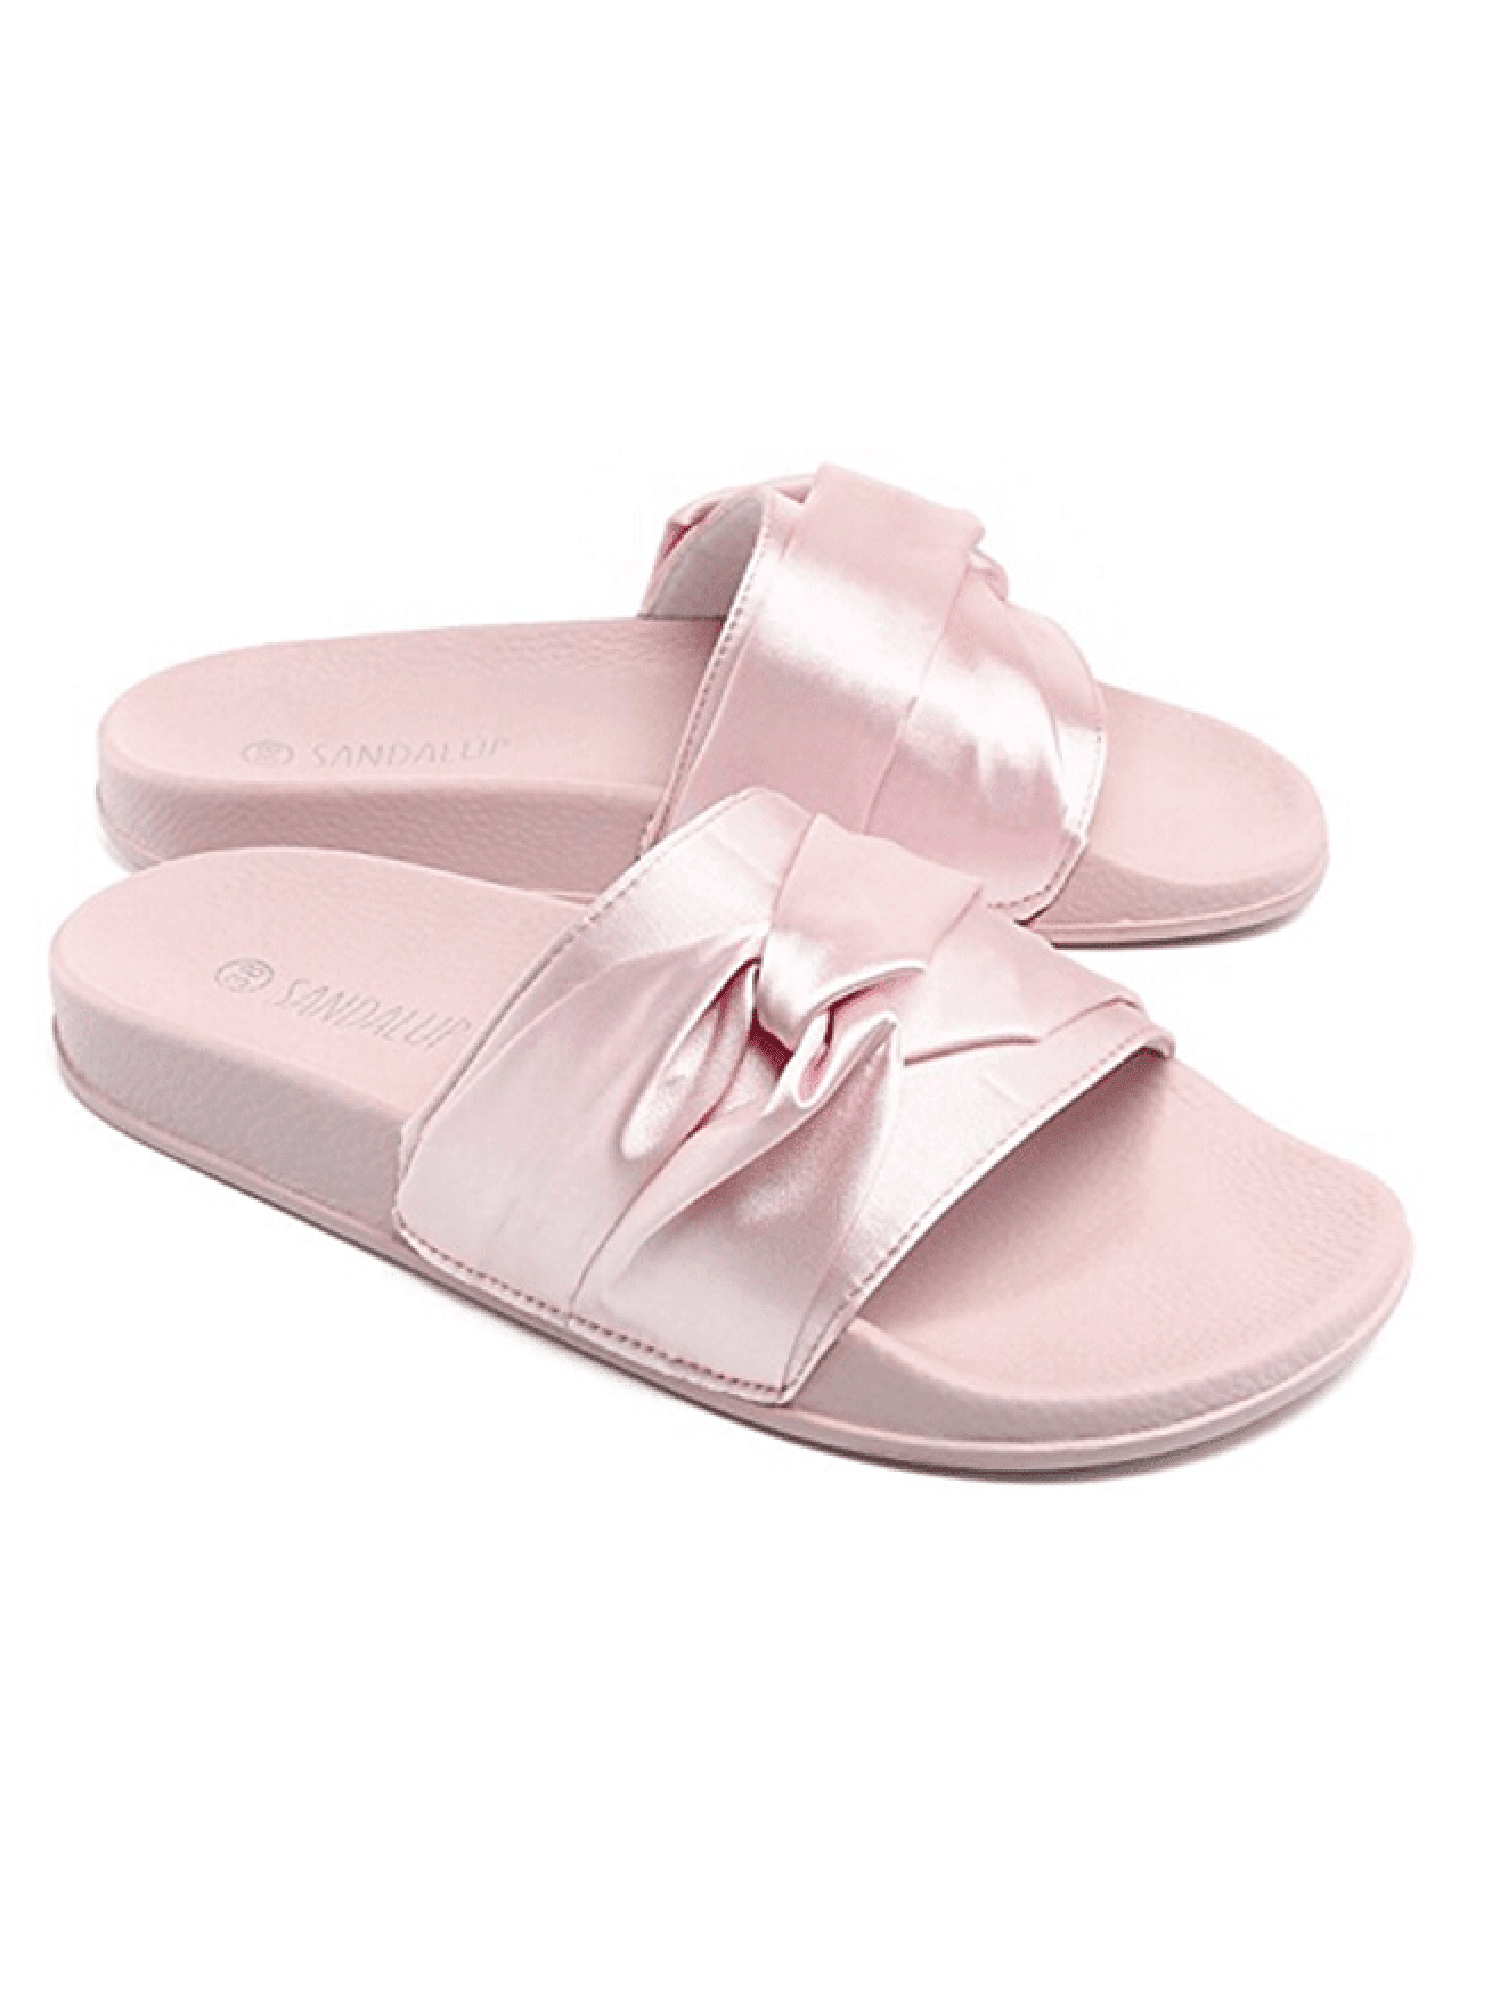 eb8f244d7ea2 Sandalup - Sandalup Single Strap Slipper Flip Flops for Women Shoes  CLEARANCE SALES